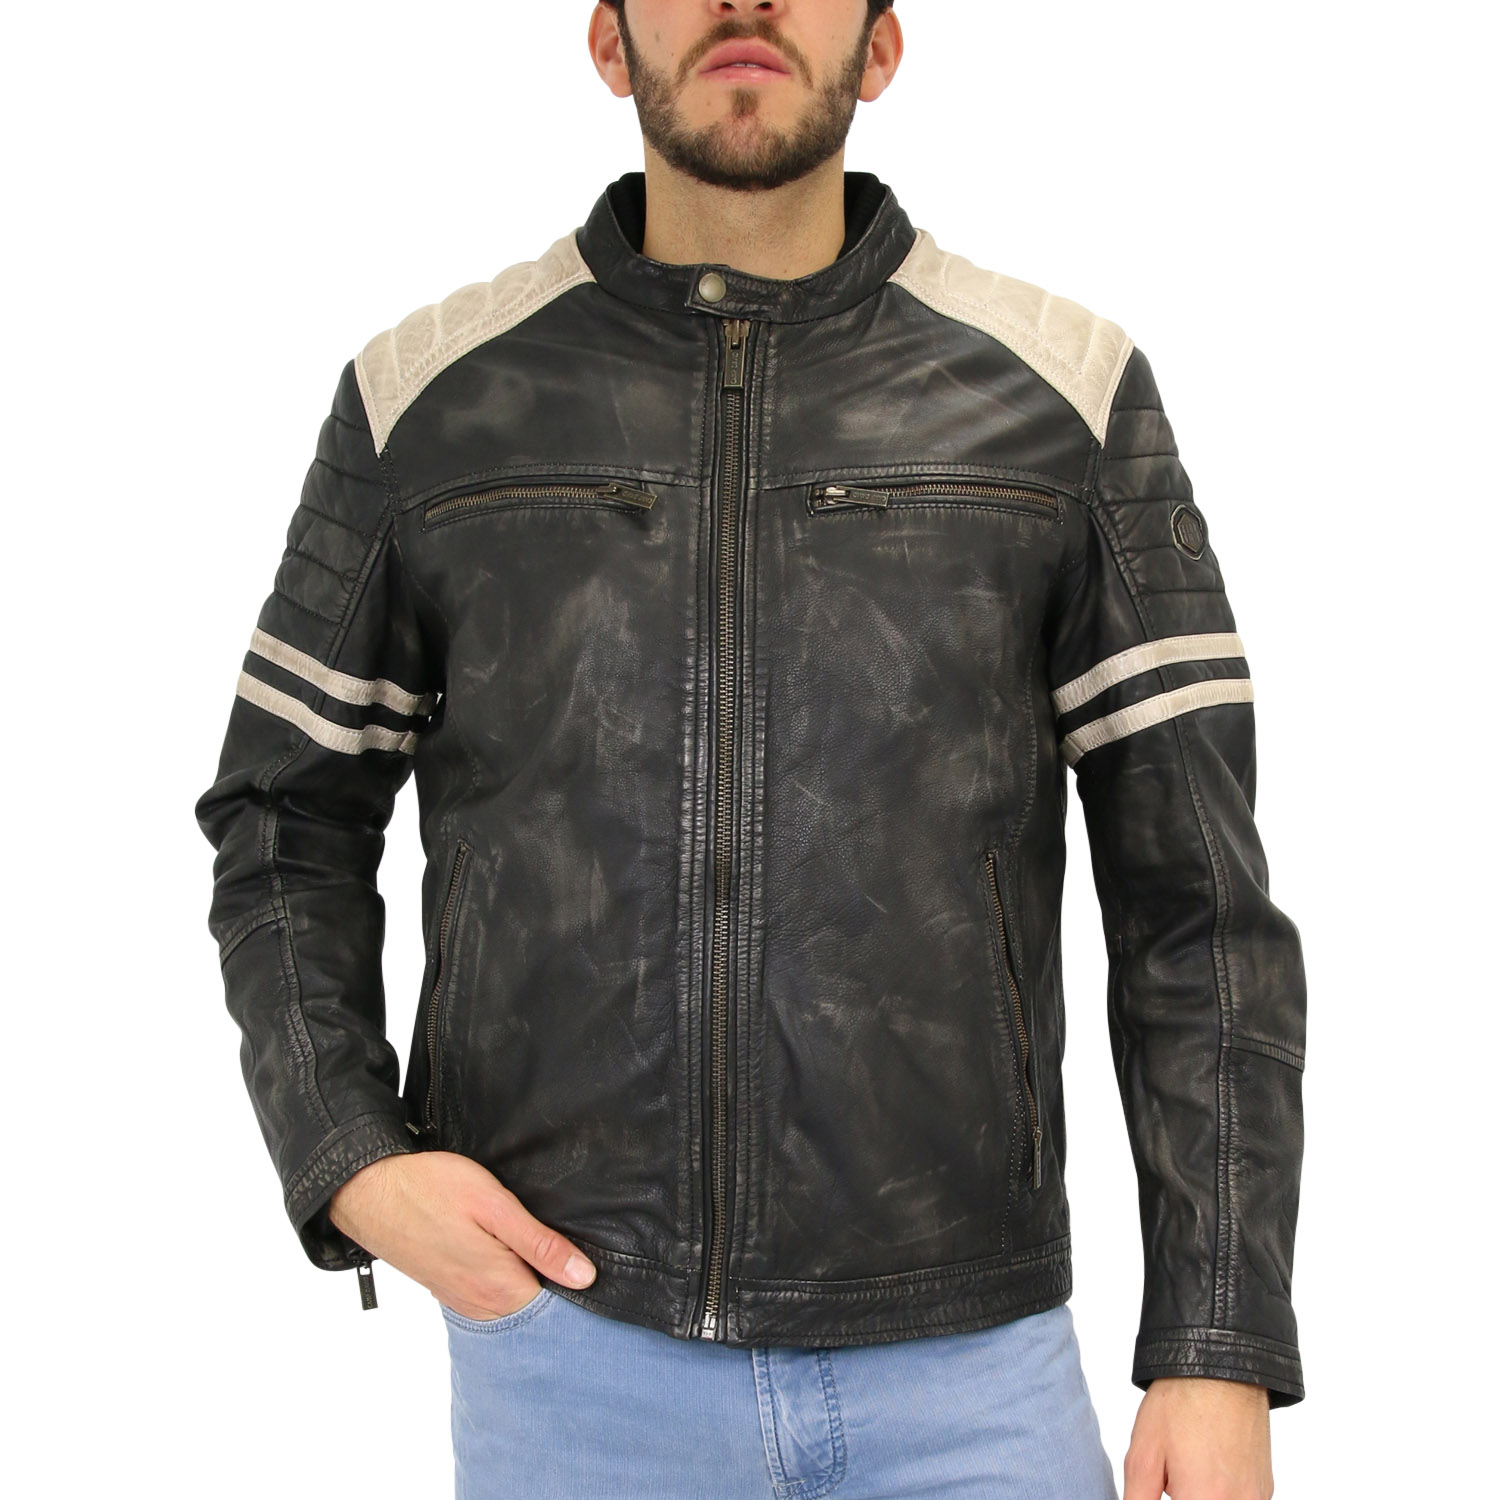 camp david leather jacket jacke lederjacke bikerjacke herren schwarz ebay. Black Bedroom Furniture Sets. Home Design Ideas